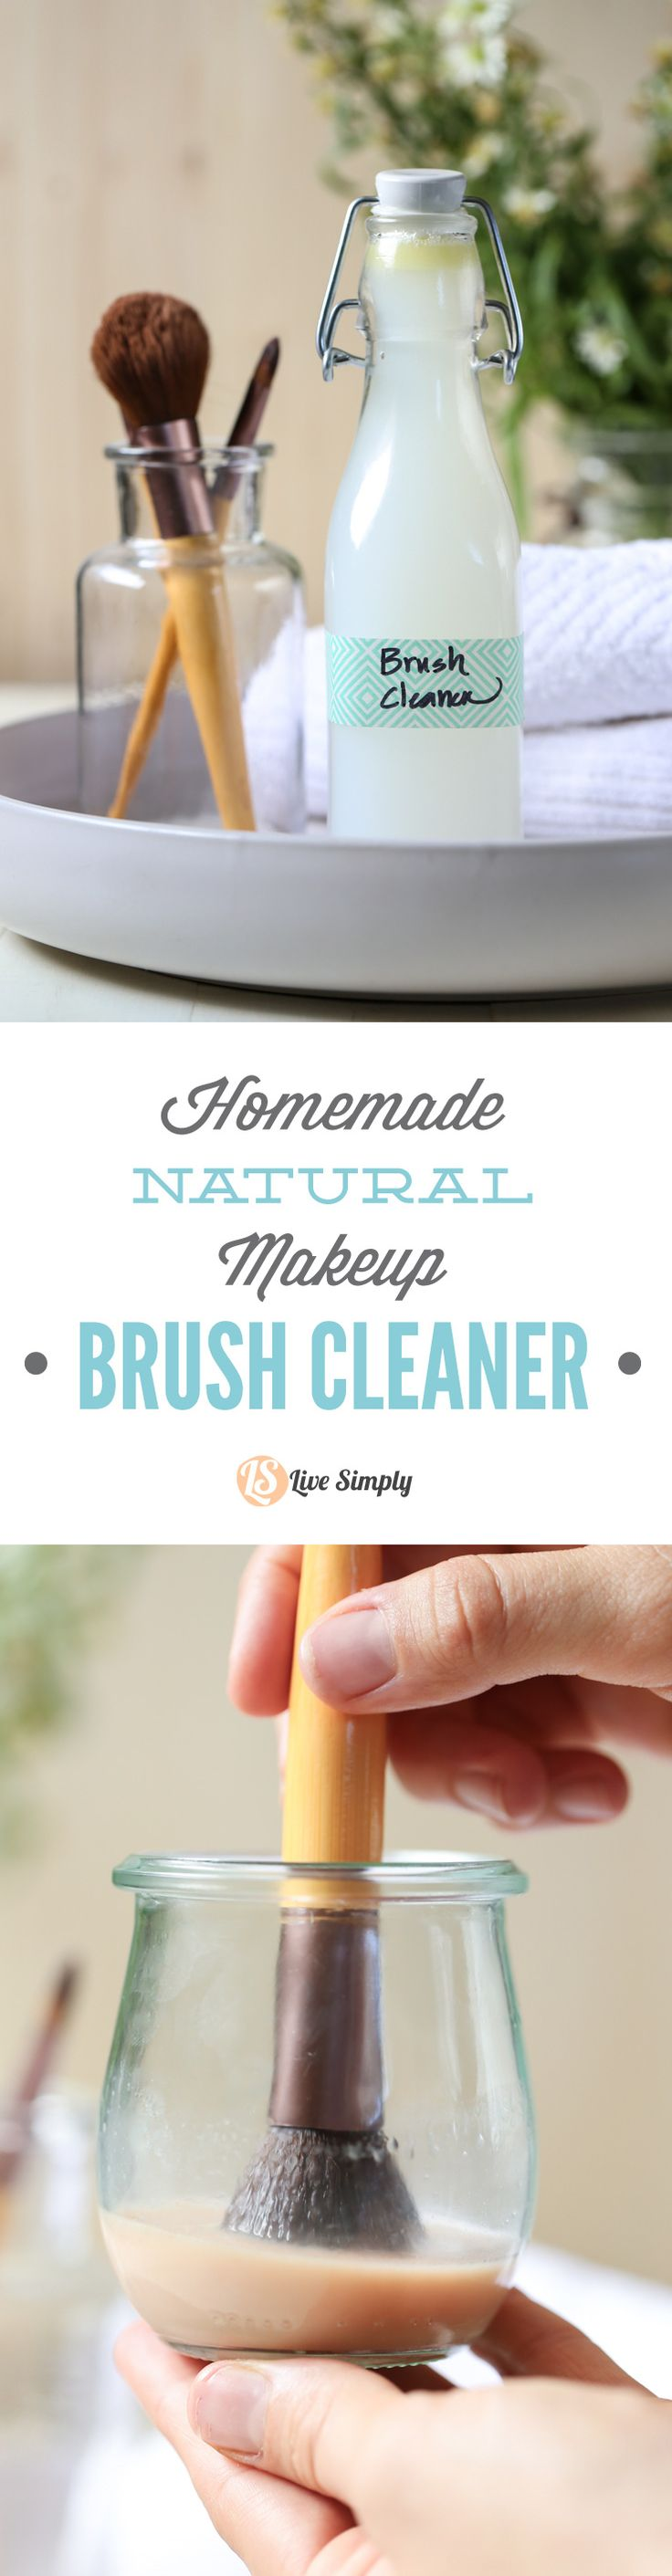 DIY makeup brush cleaner: distilled water, witch hazel, castile soap, nourishing oil. From Live Simply.